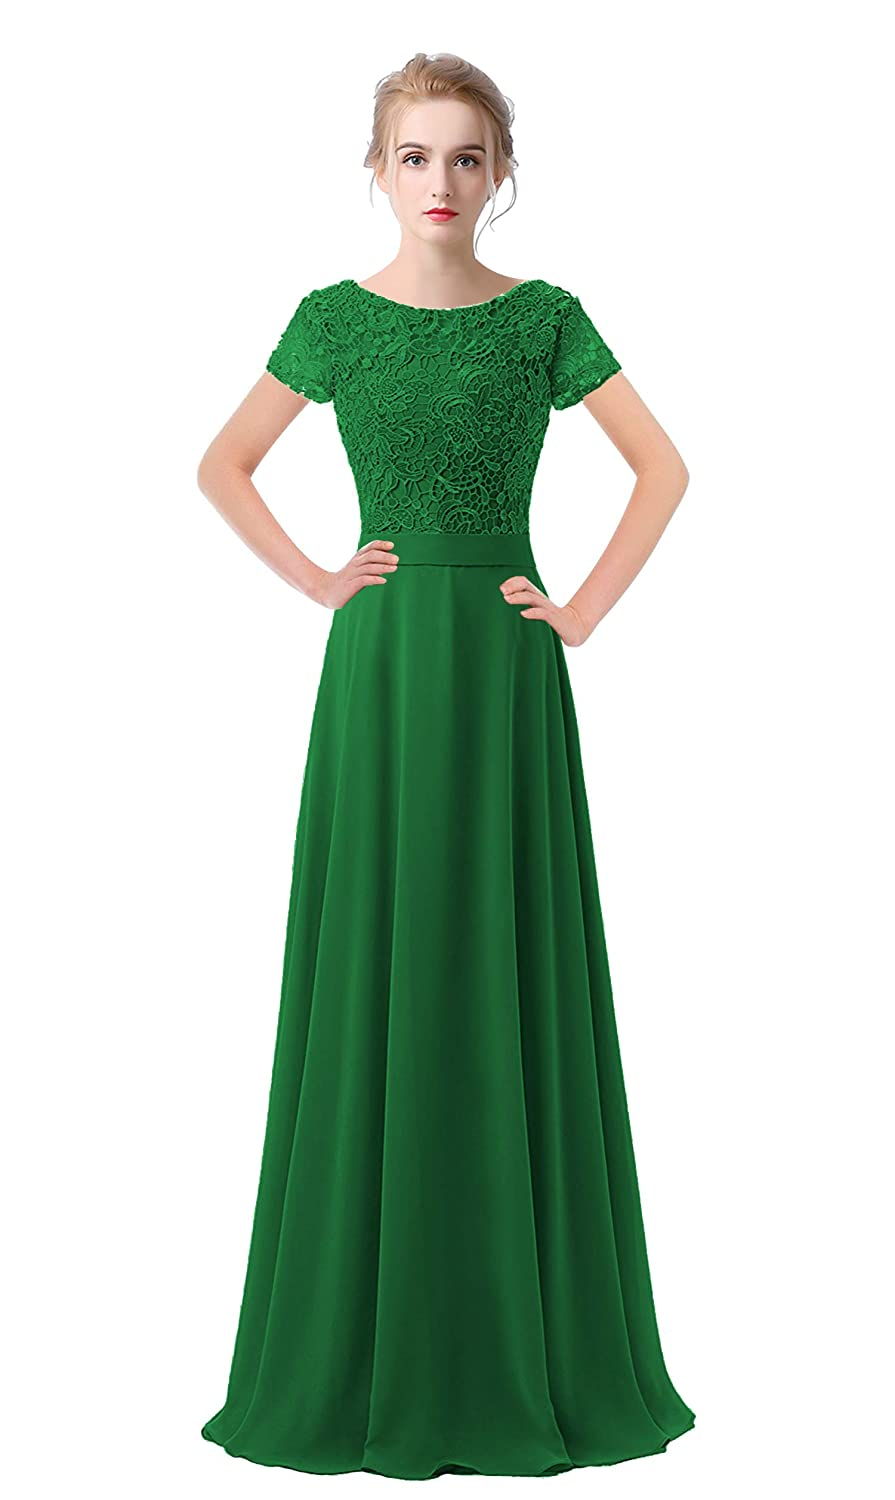 Green VaniaDress Women Lace Short Sleeves Long Evening Dress Prom Gown V061LF